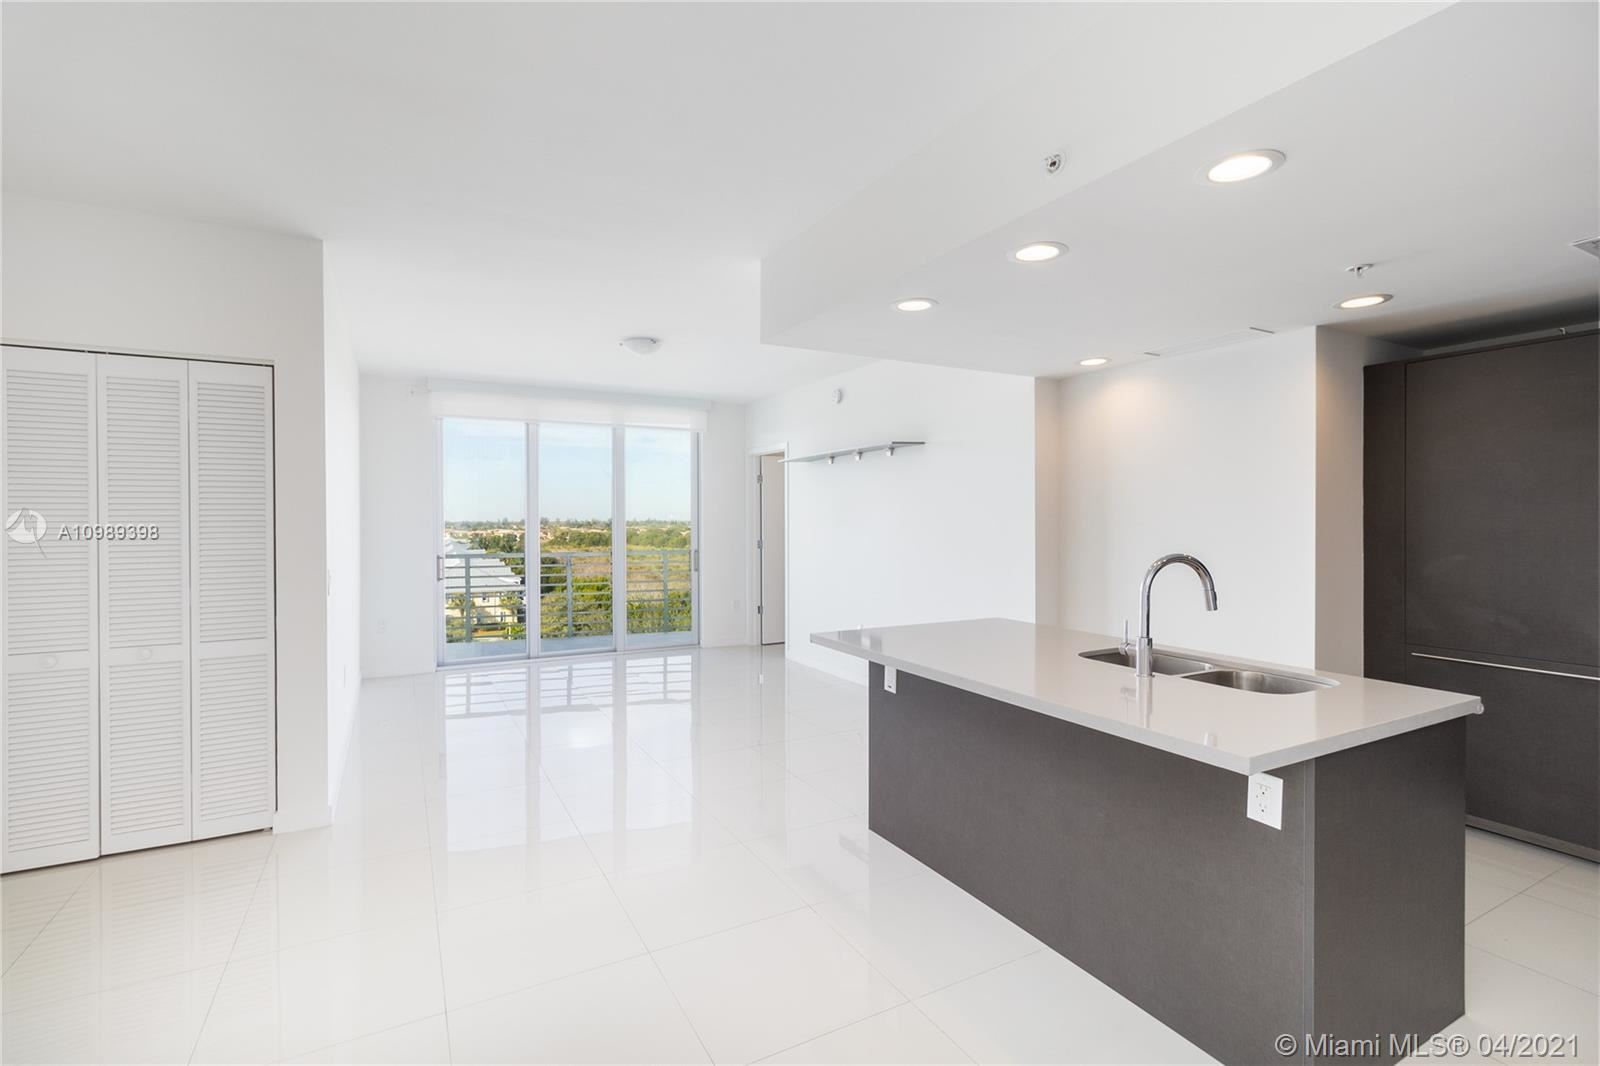 7661 NW 107th Ave #612, Doral, FL 33178 - #: A10989398